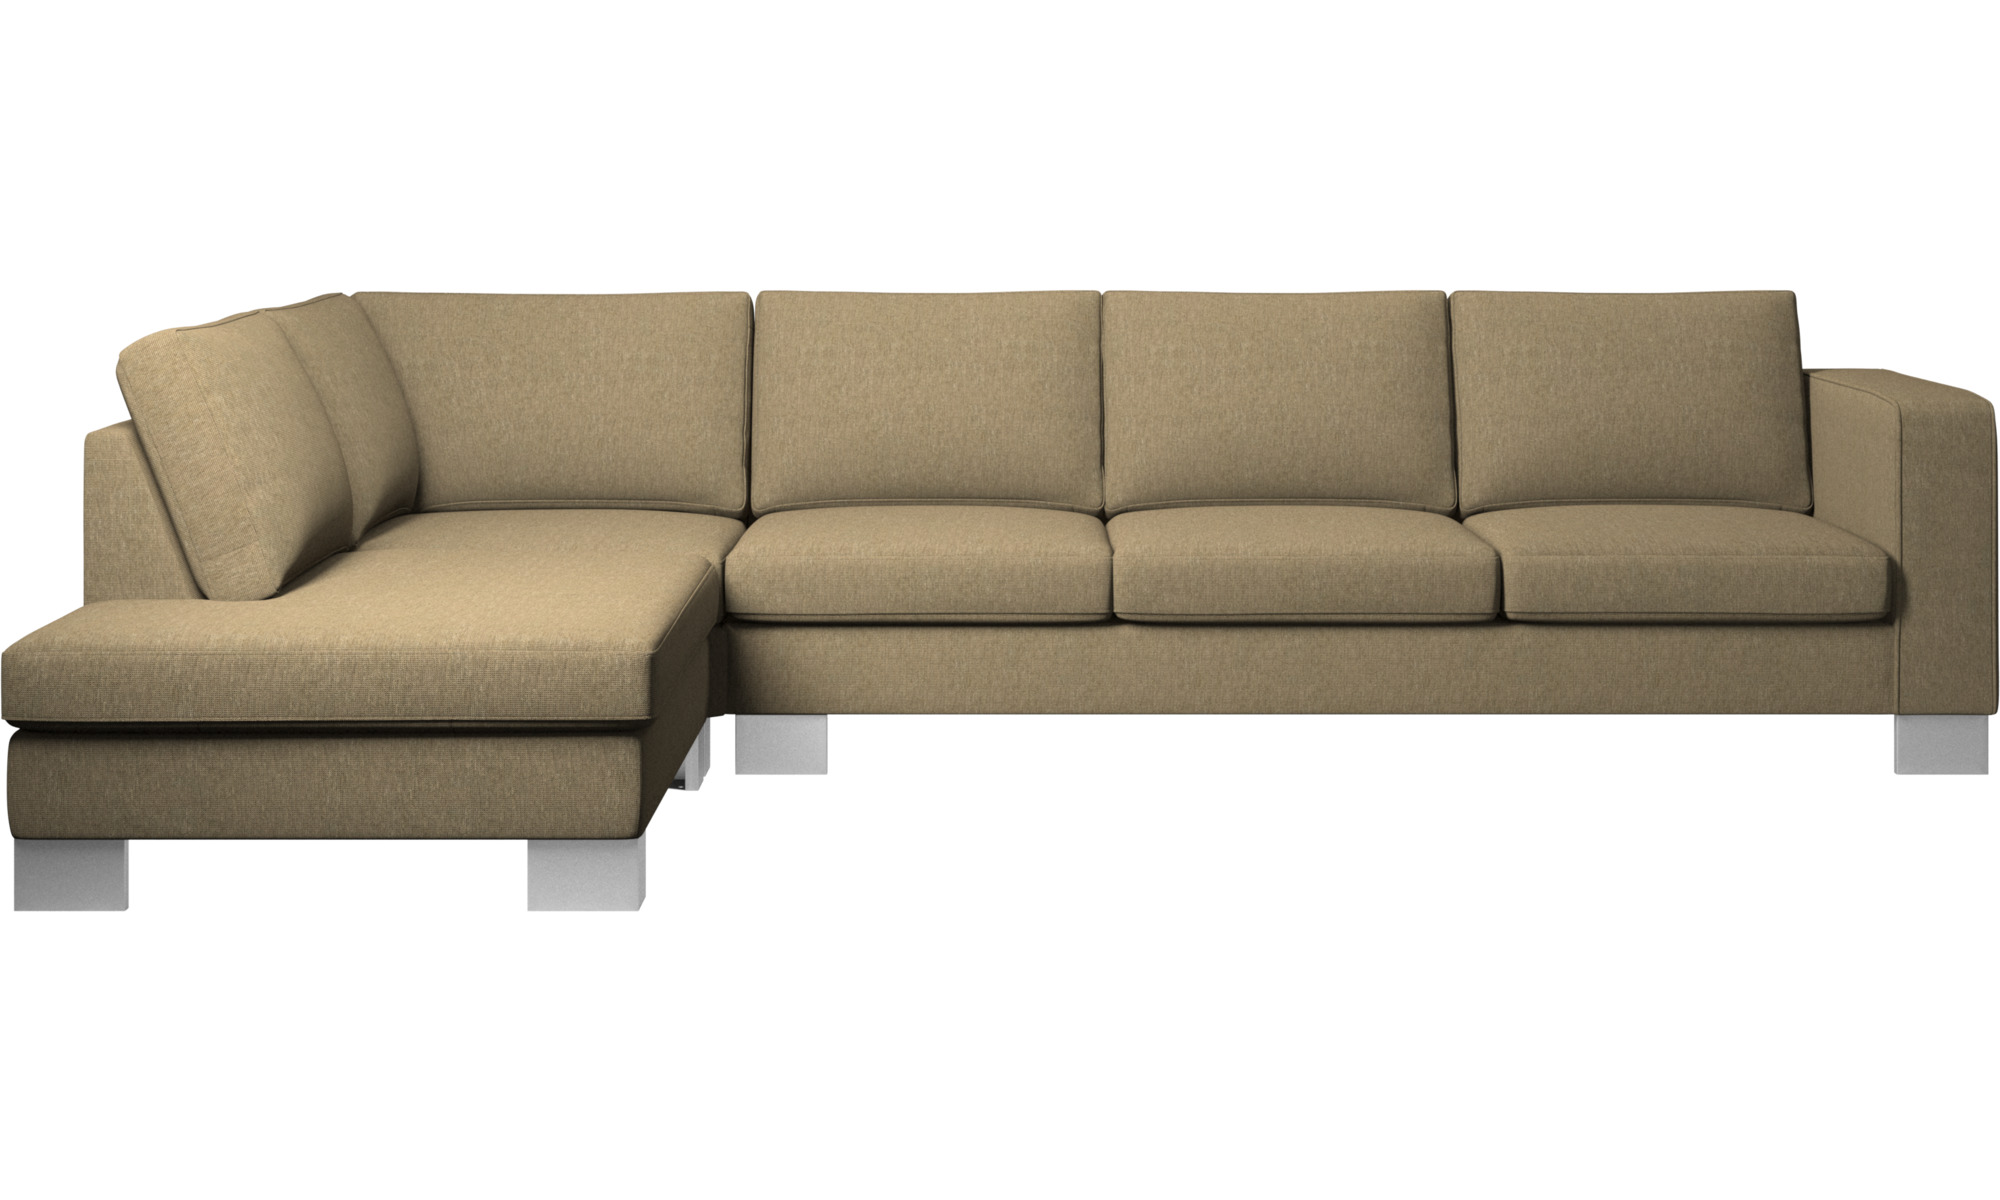 Corner sofas indivi 2 corner sofa with lounging unit - Sofa cama de espuma ...